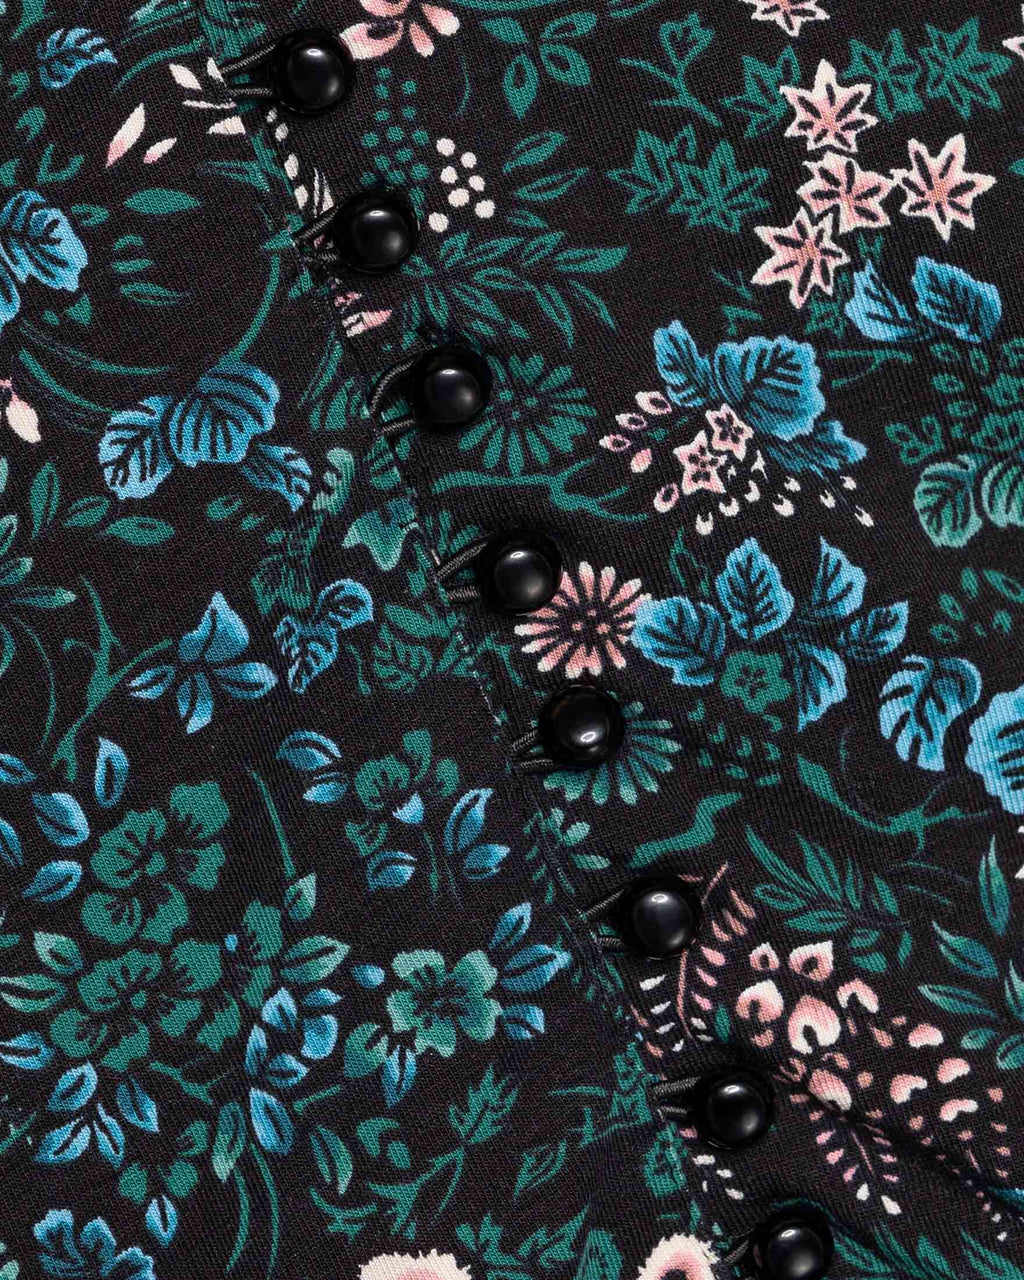 variant_1 | EN Black with Flowers Dress woman with flowers | DE Schwarzes Kleid Damen mit Blumenmuster